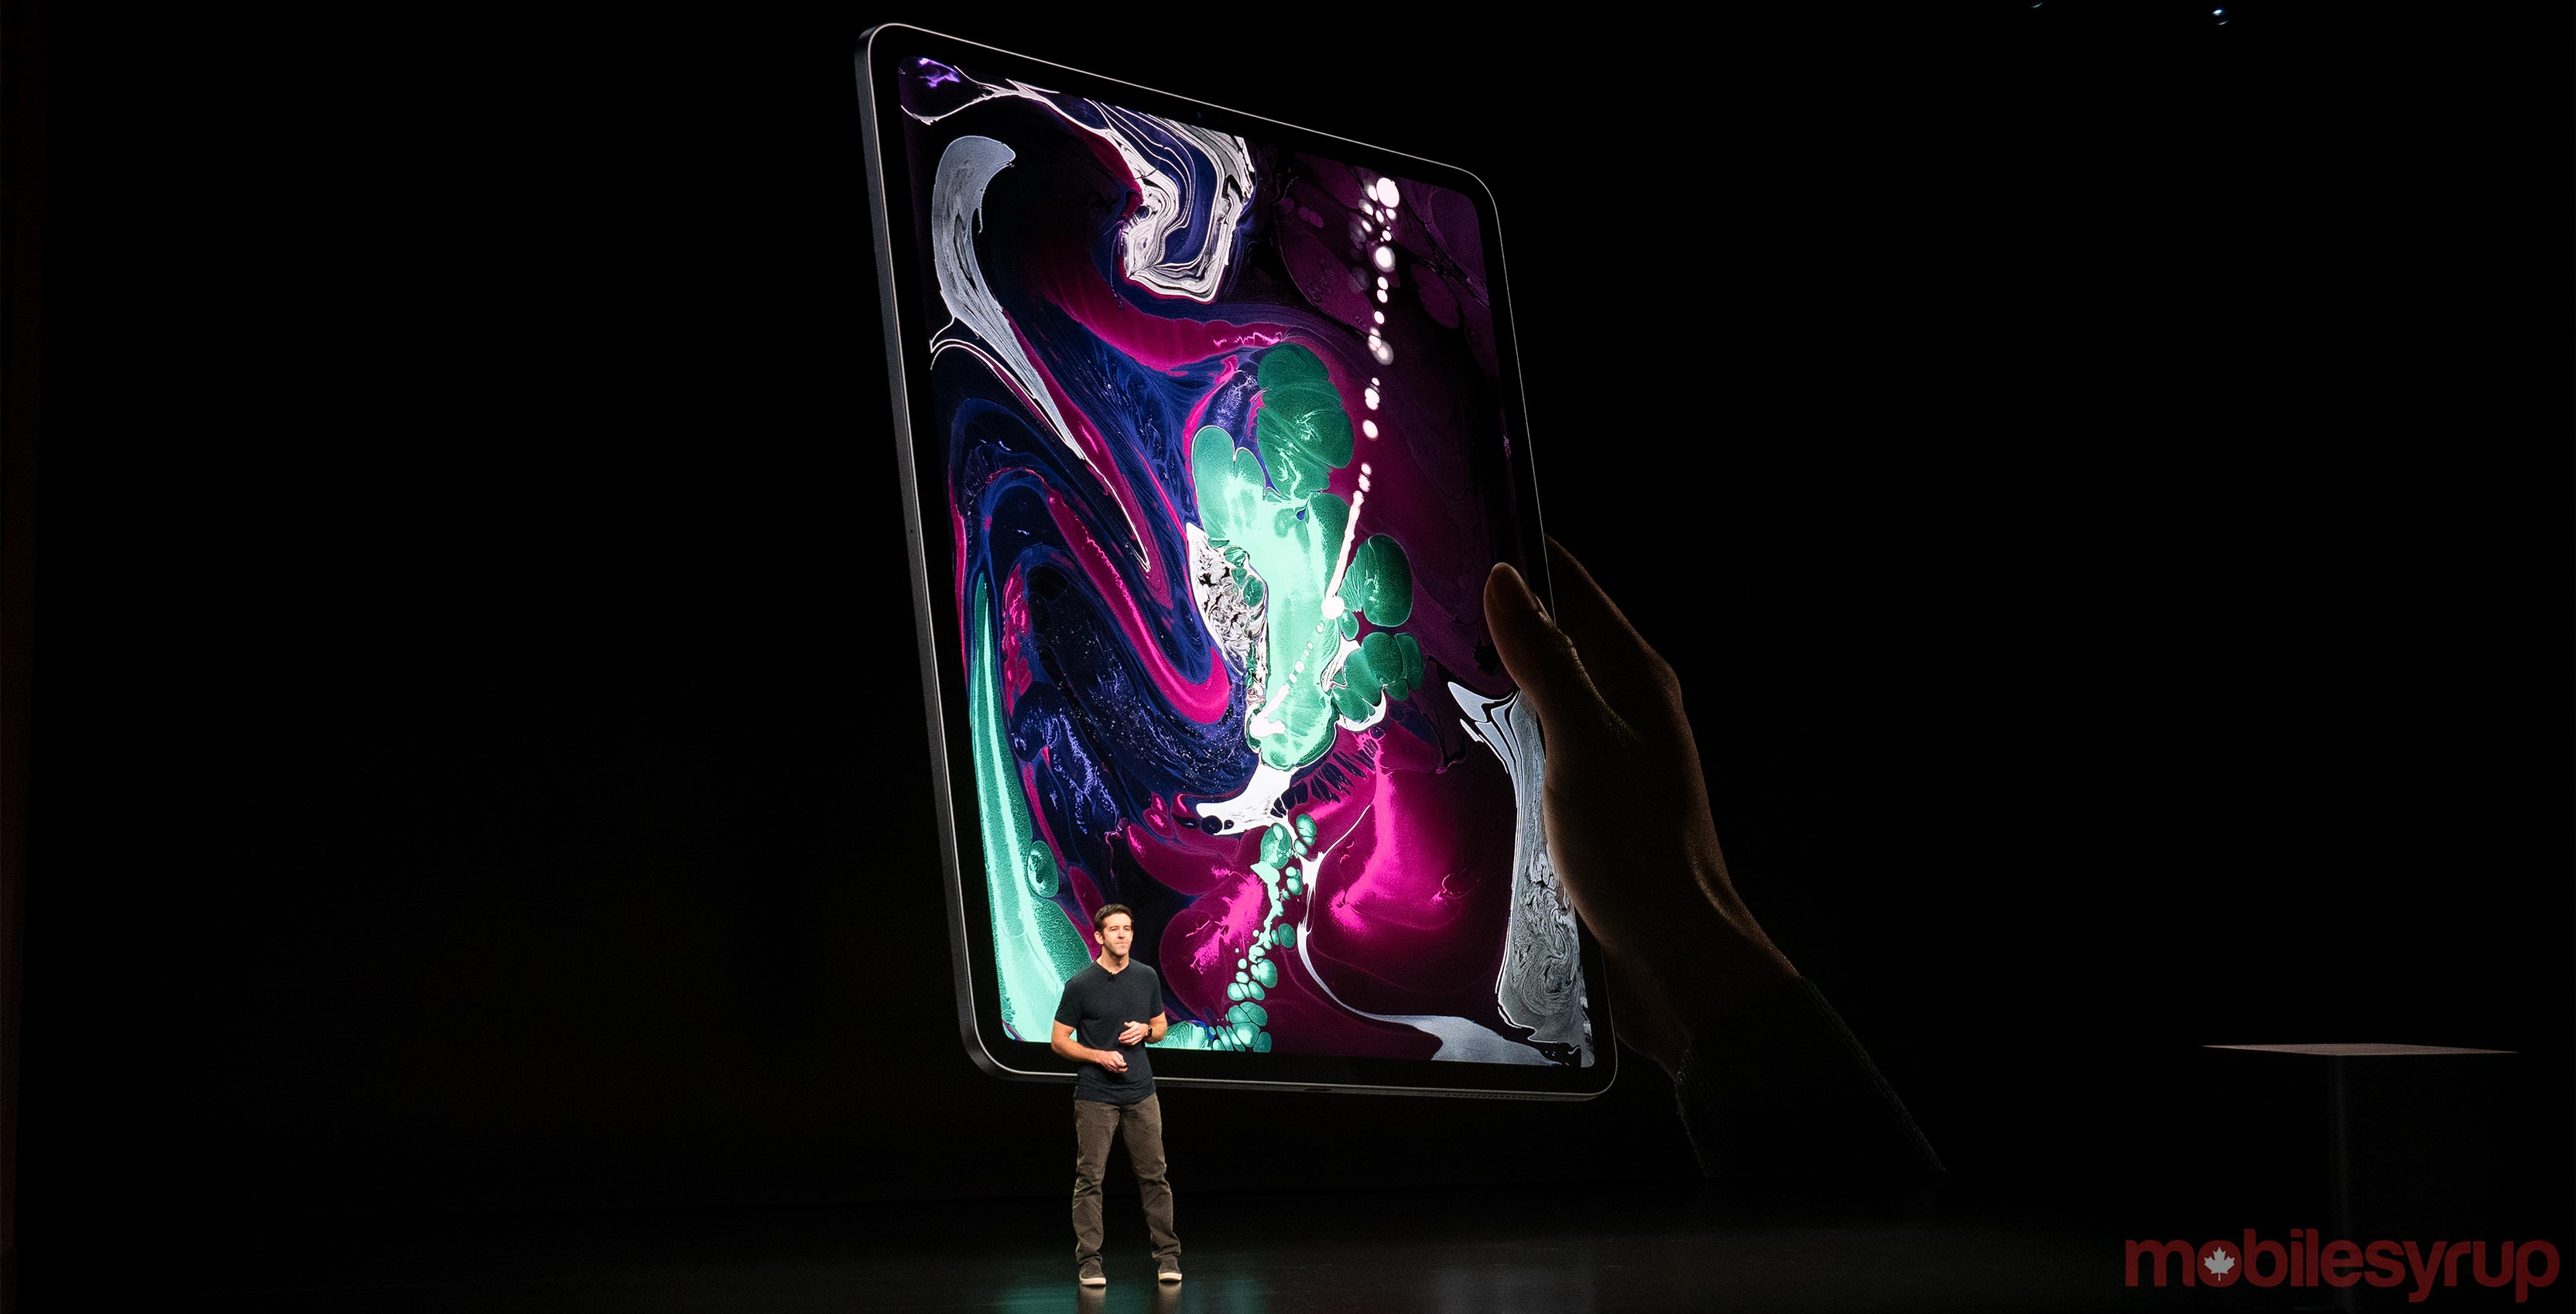 Apple's new iPad Pro